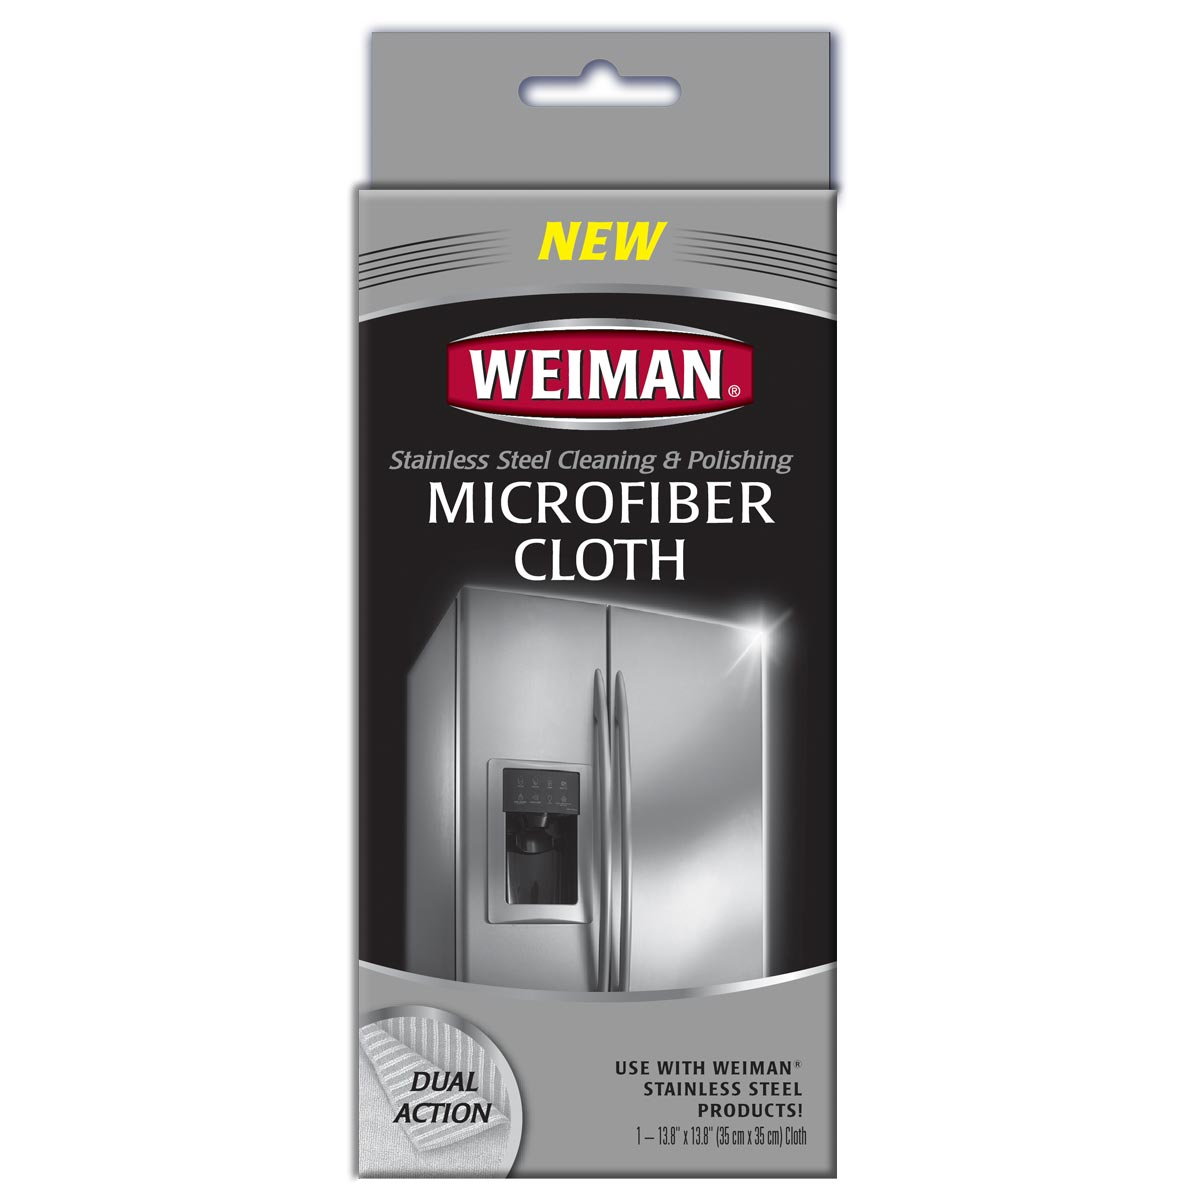 https://googone.com/media/catalog/product/w/e/weiman-microfiber-cloth-for-stainless-steel_front_5.jpg